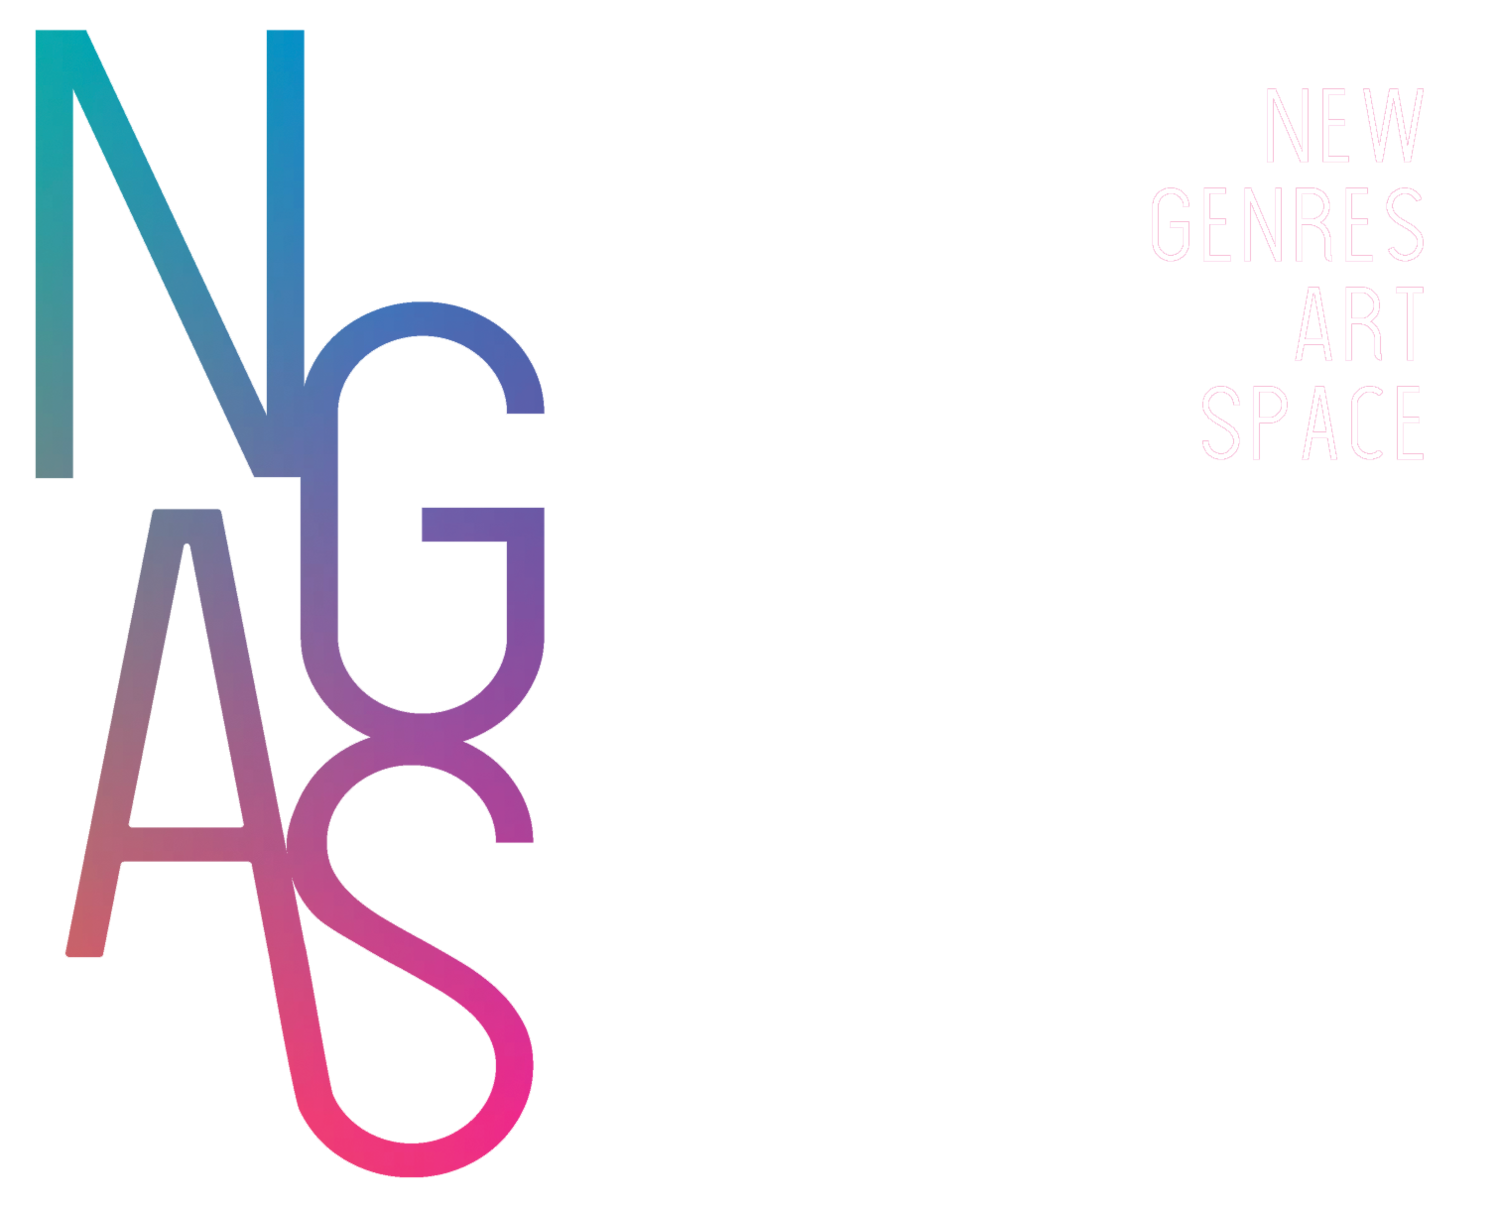 New Genres Art Space